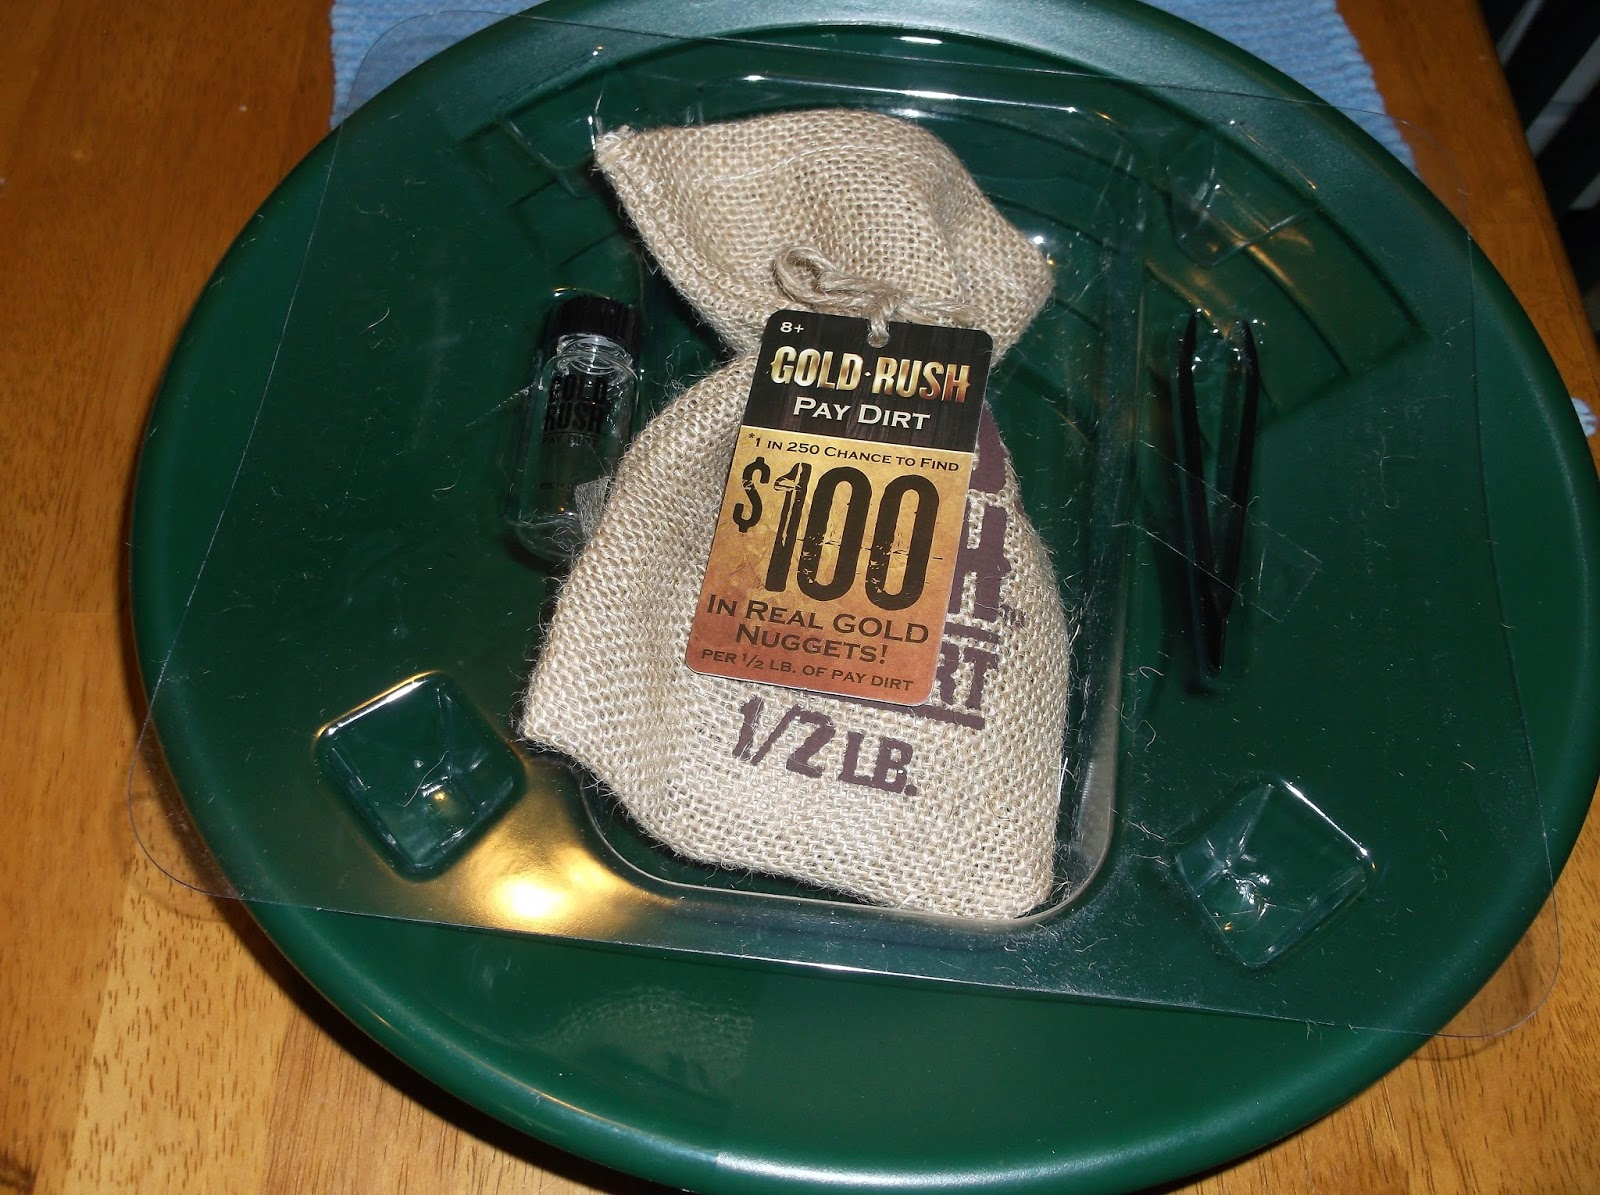 missys product reviews gold rush pay dirt review u0026 giveaway